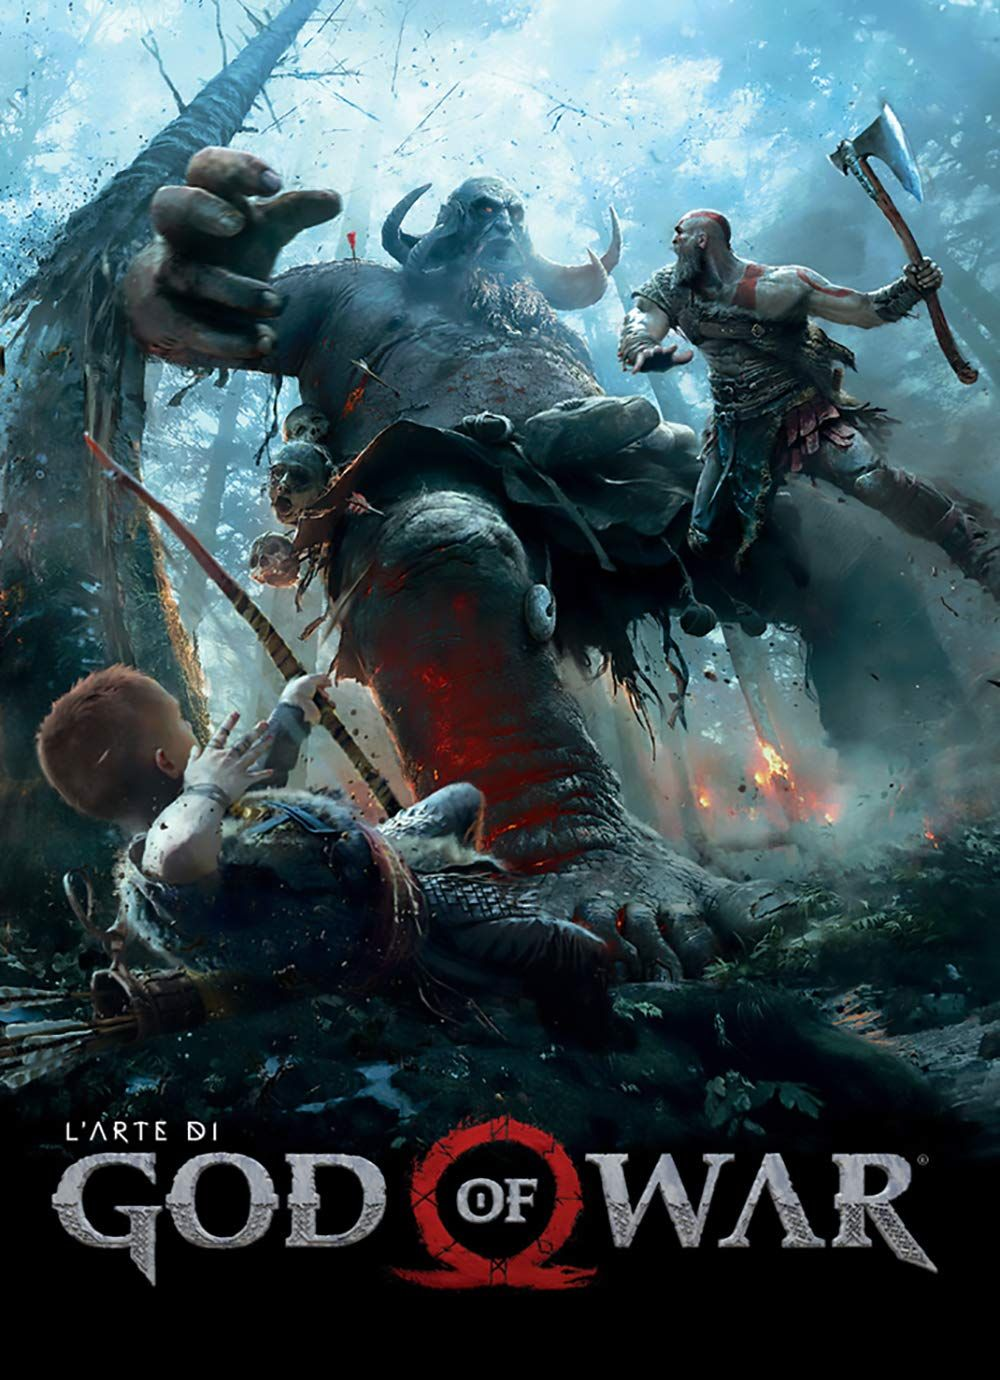 L'arte di God of War di, arte, War, God God of war